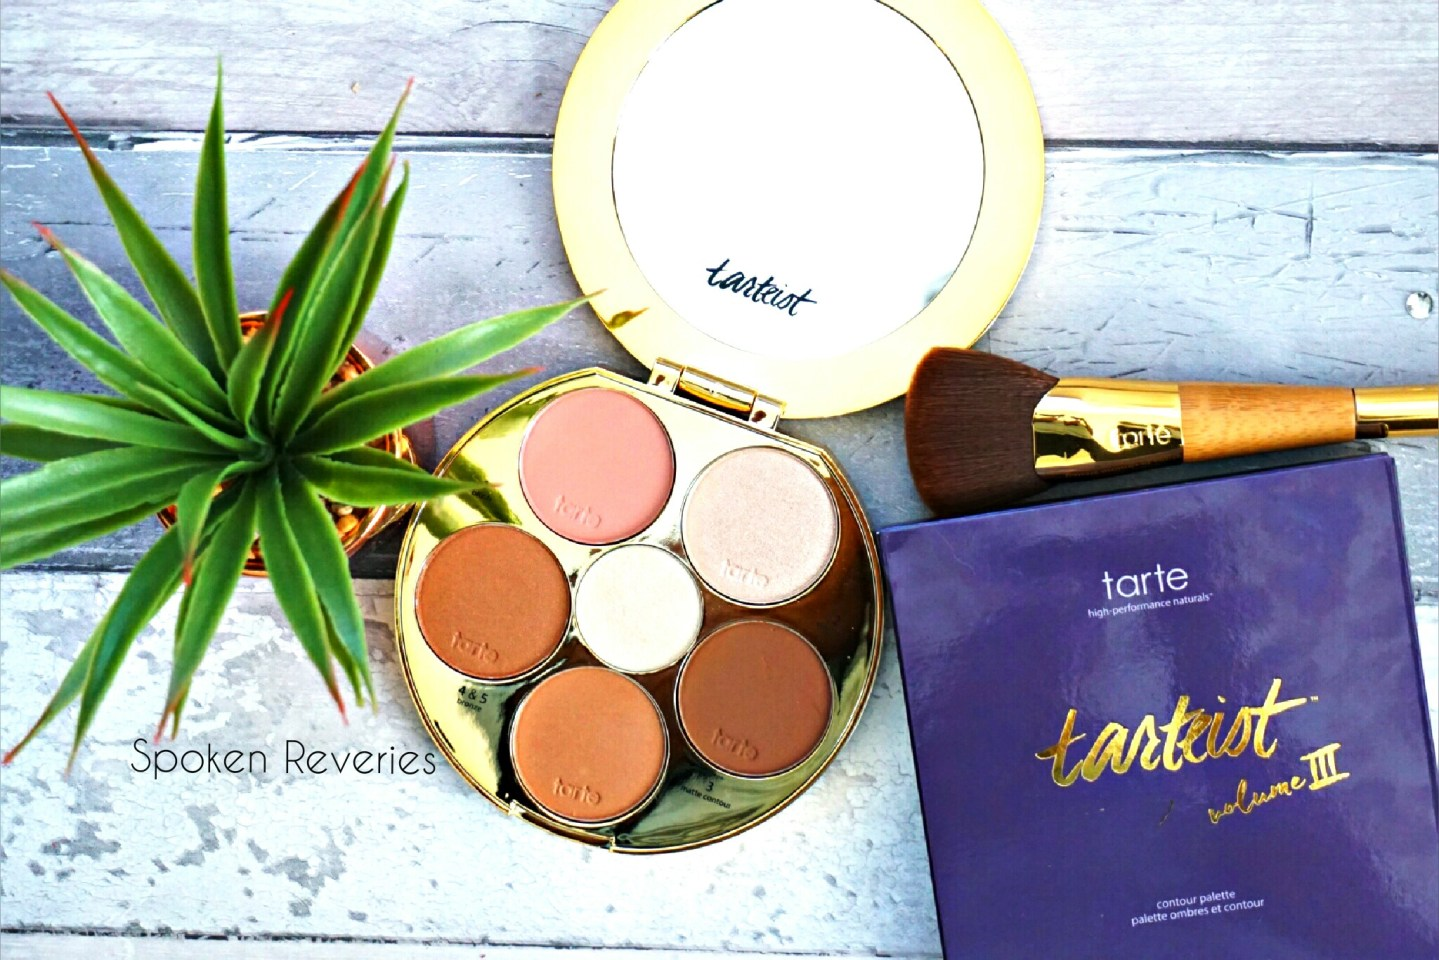 Does it really work though?! Tarteist Vol. III Contour Palette